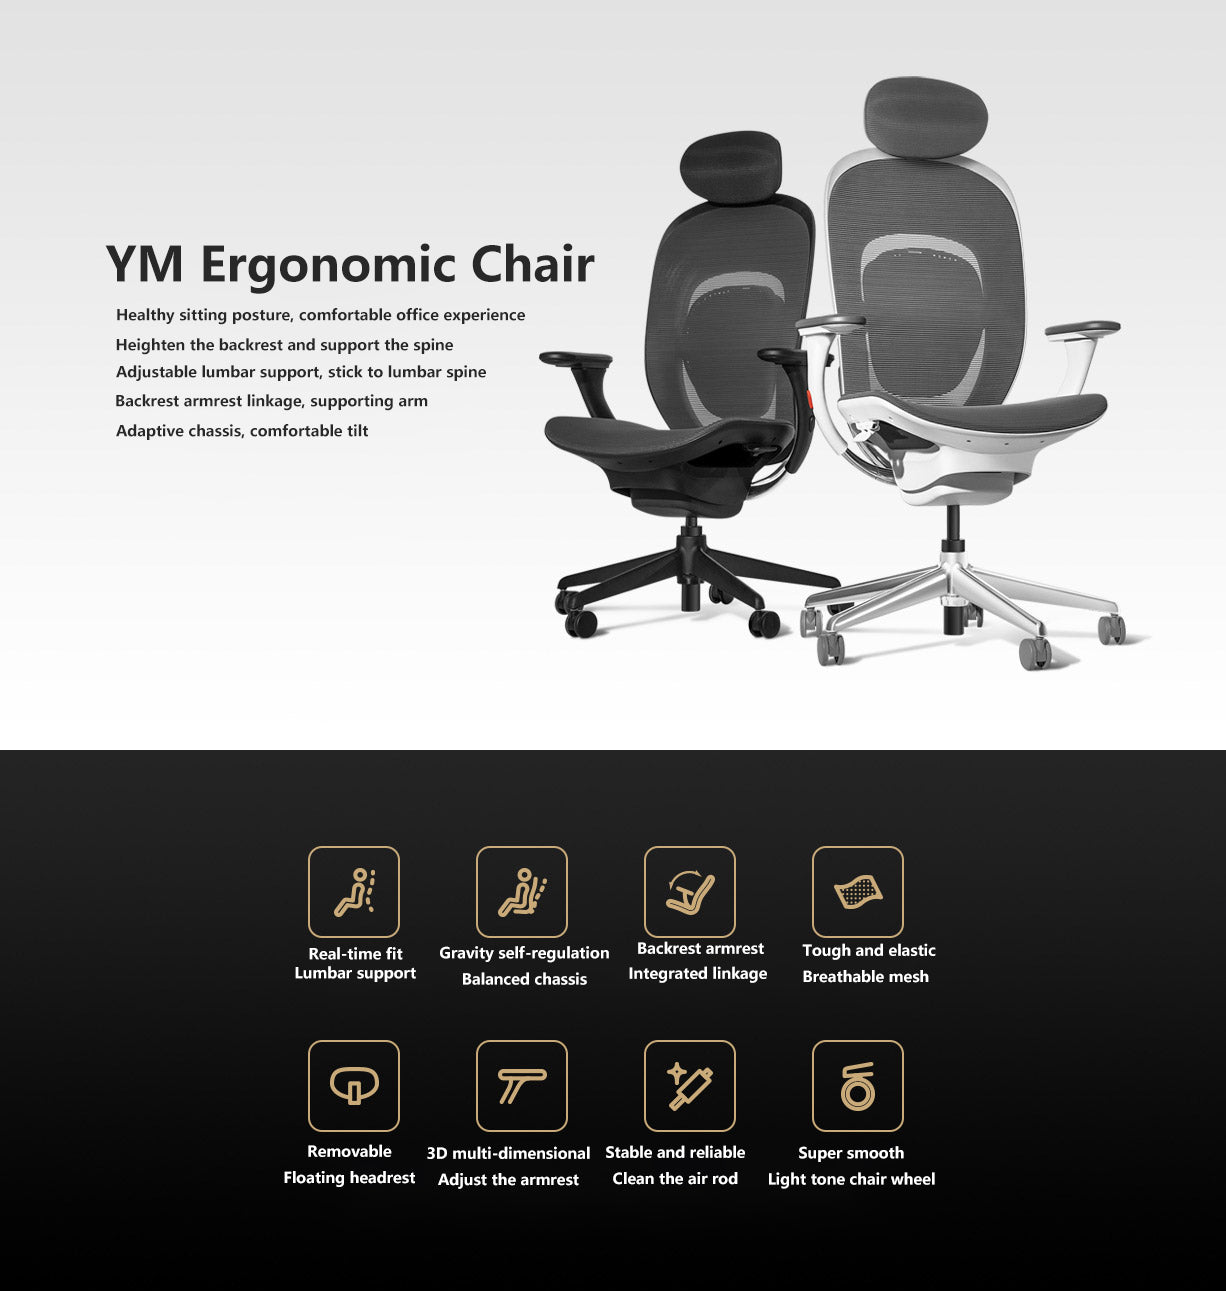 xiaomi ym office gaming chair in india furper